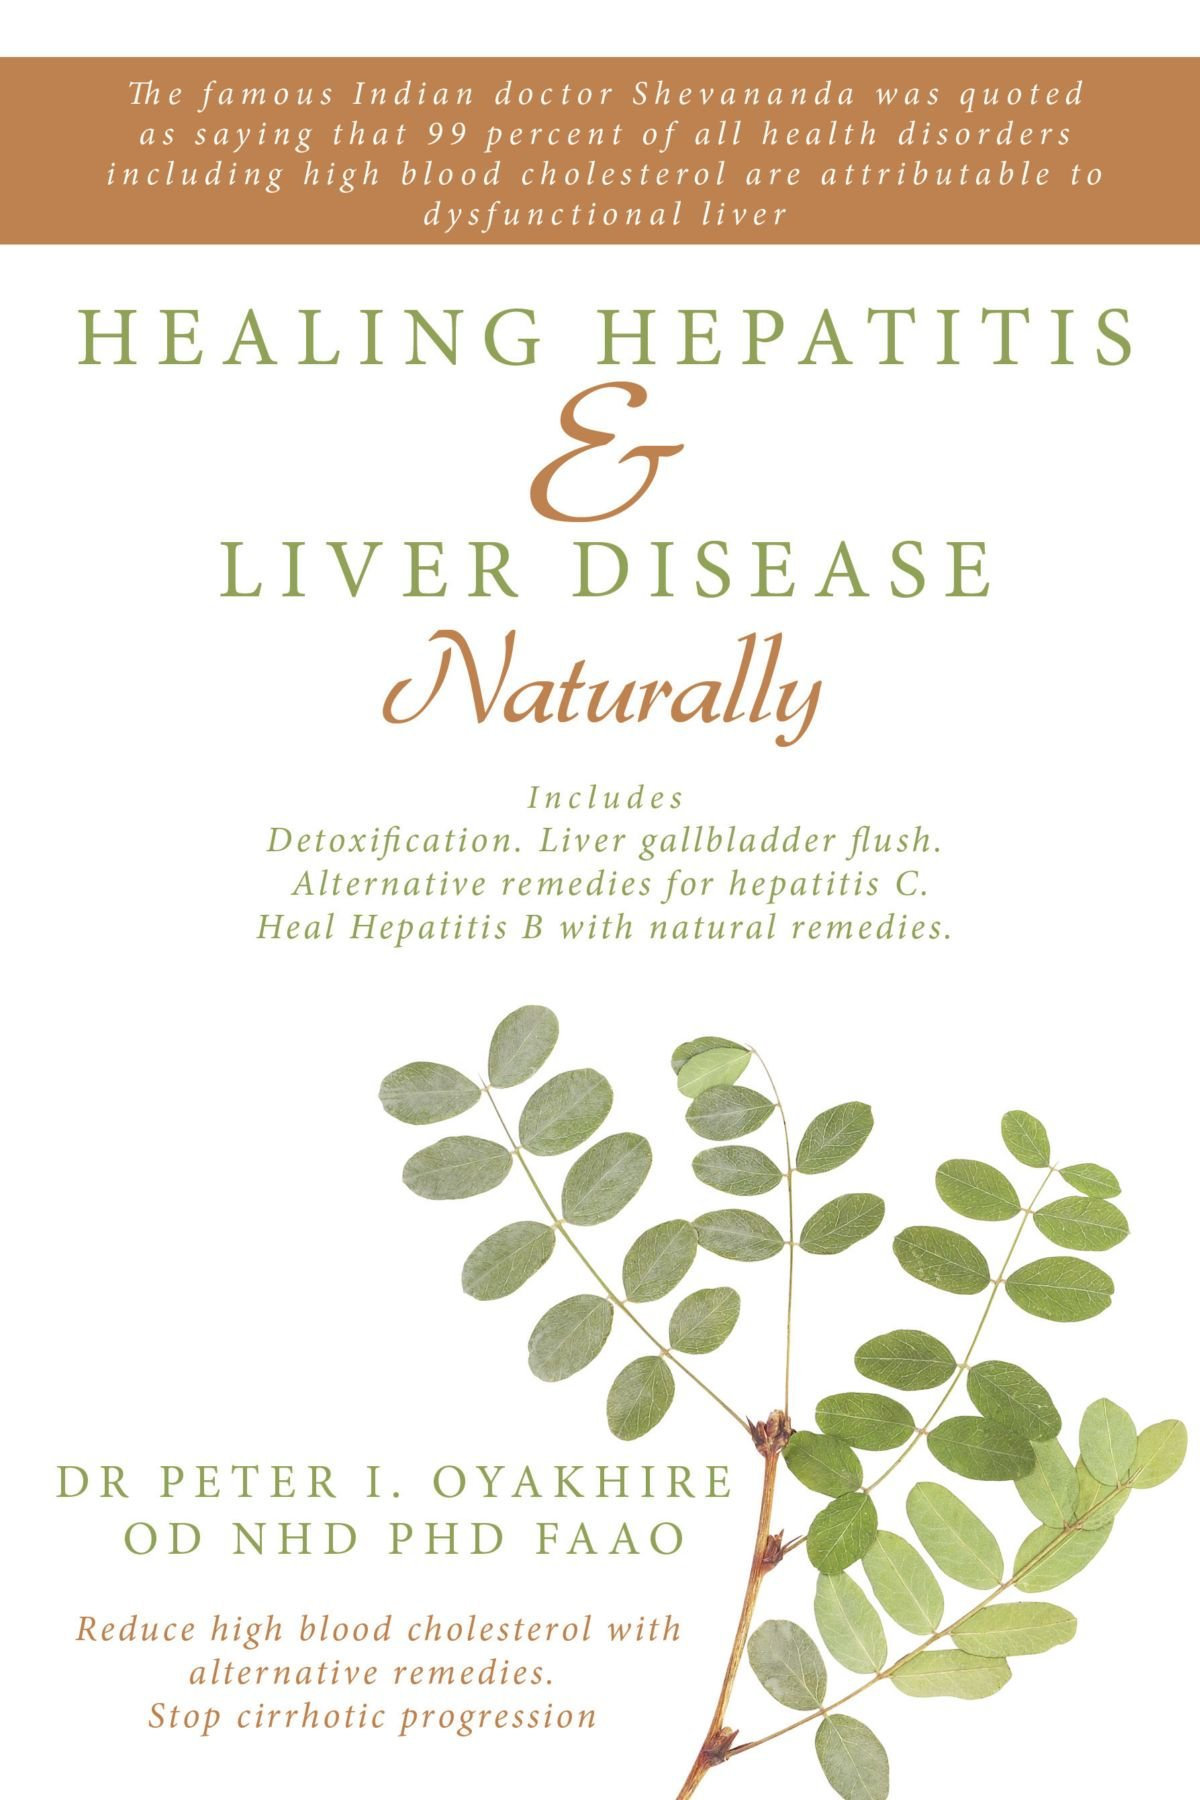 Download Healing Hepatitis and Liver Disease Naturally: Detoxification. Liver gall bladder flush & Cleanse. Cure Hepatitis C and Hepatitis B. Lower blood cholesterol and stop cirrhosis ebook